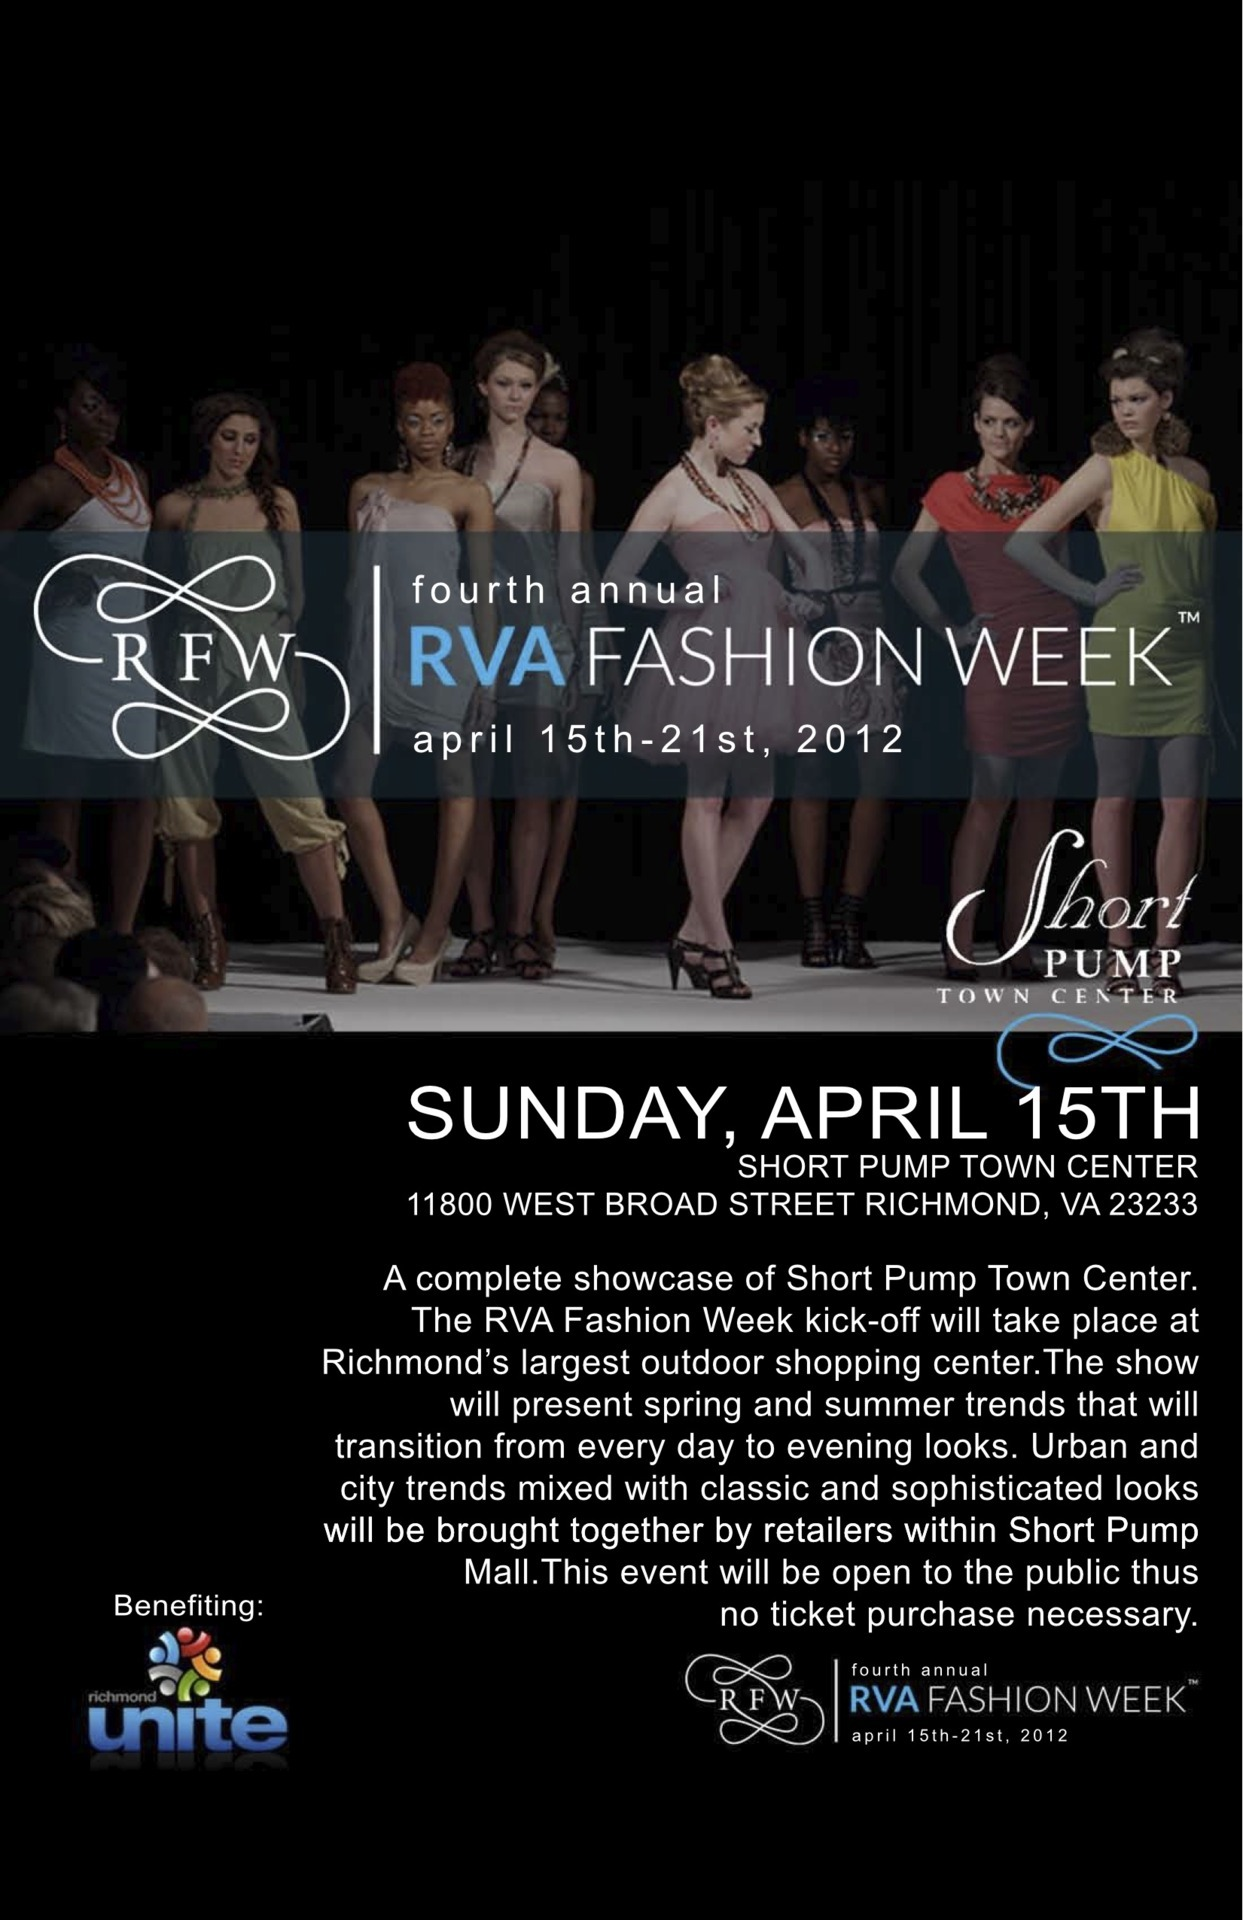 RVA Fashion Week starts on April 15th! Don't miss out!